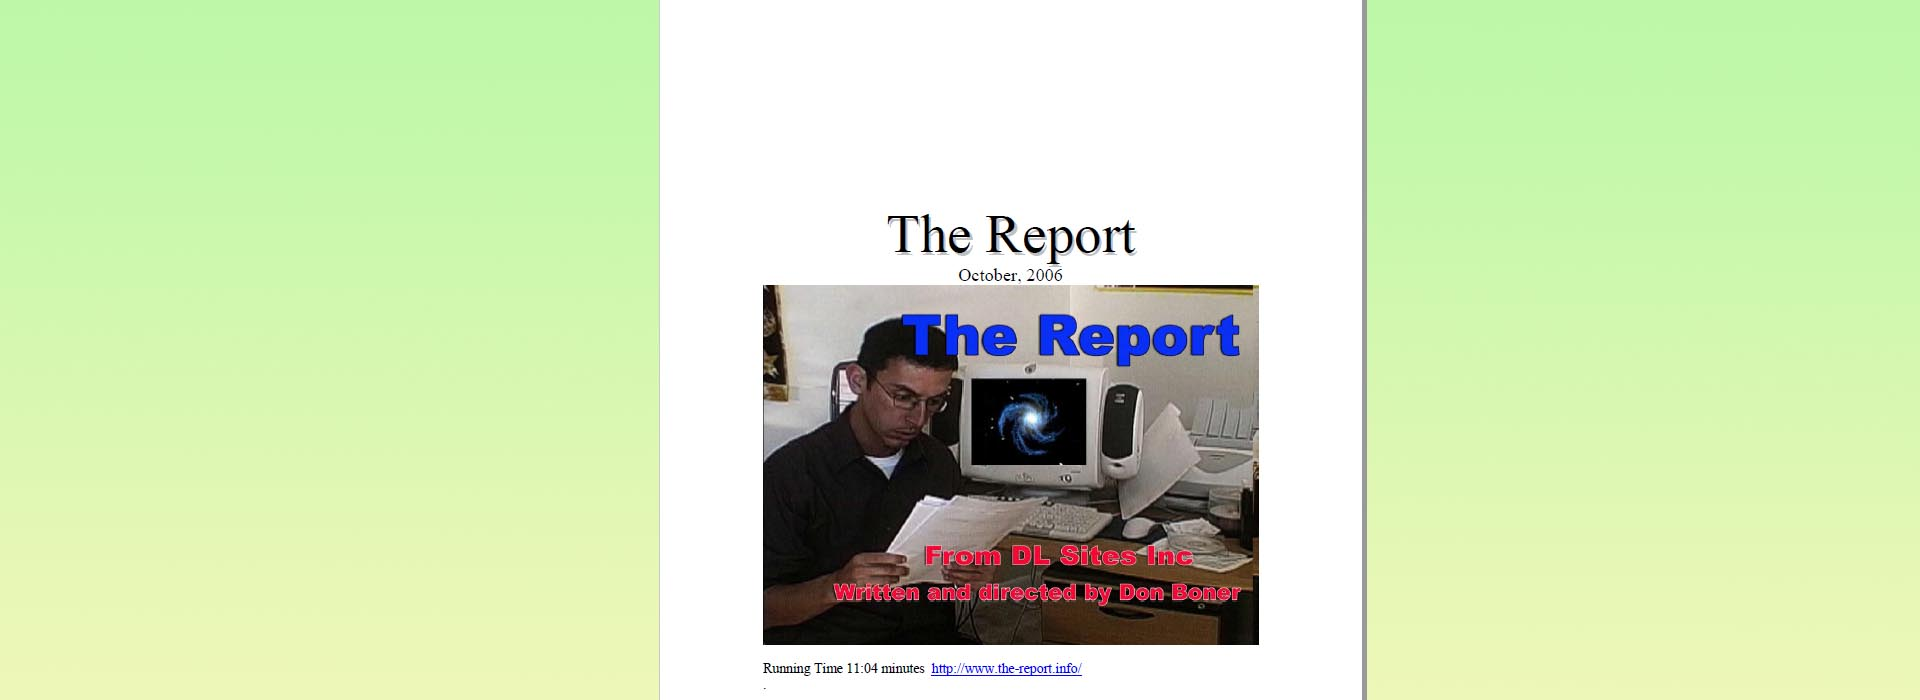 The Report Presskit